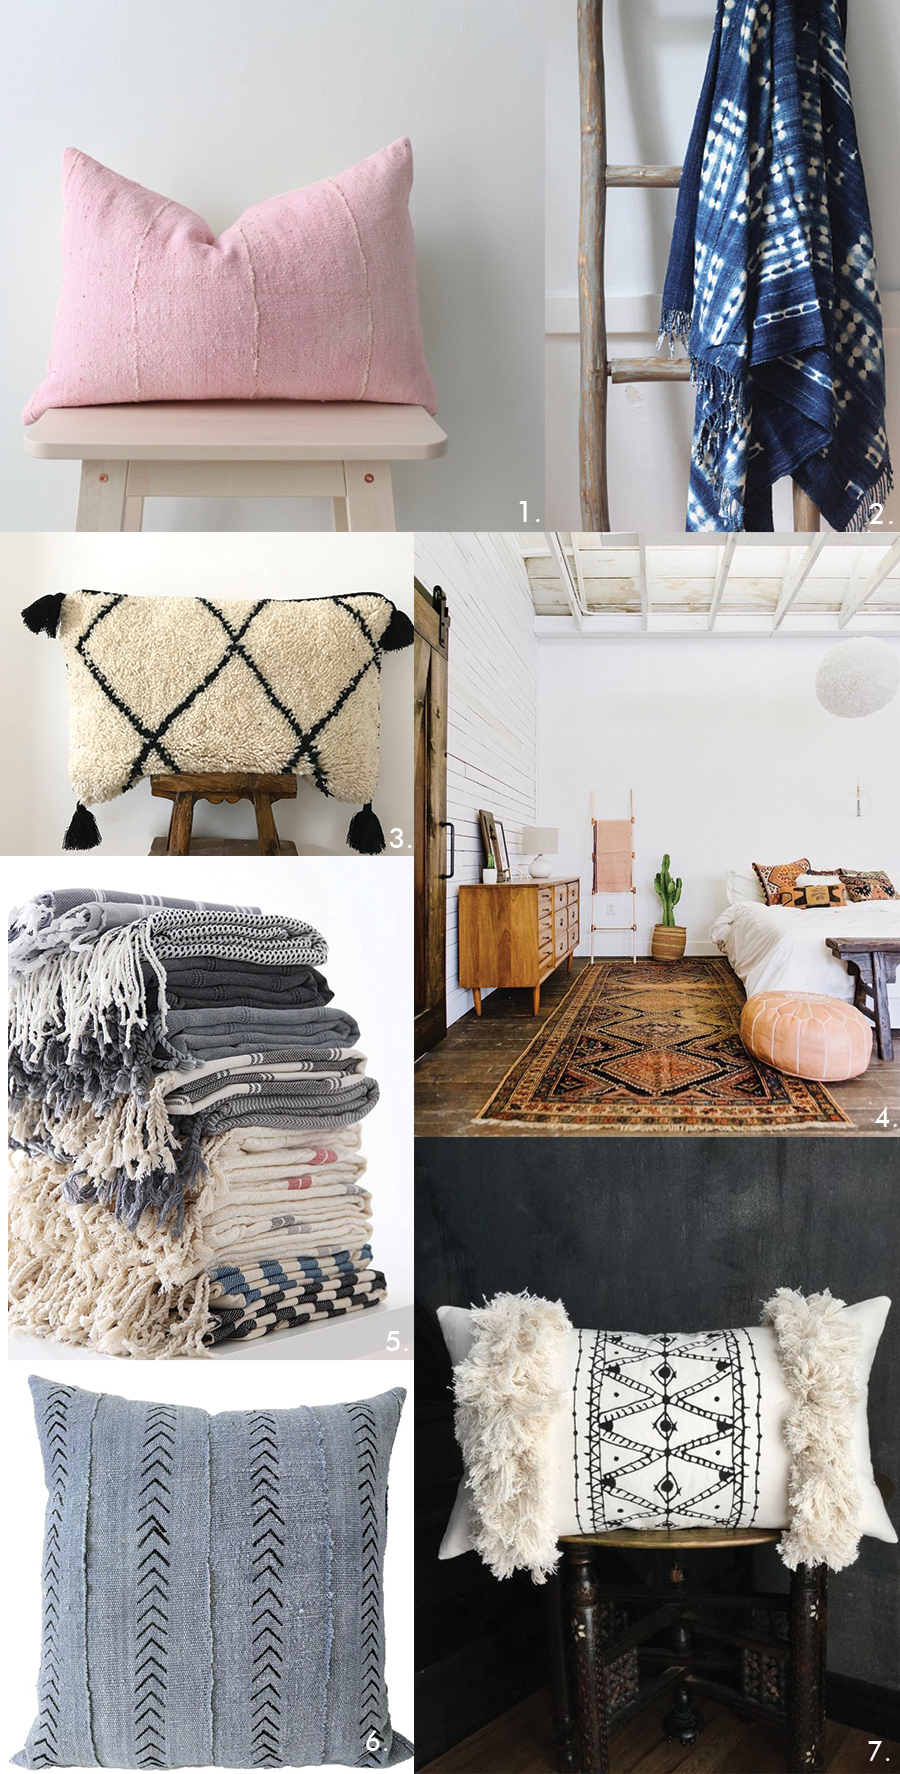 boho decor - Where to shop for boho pillows